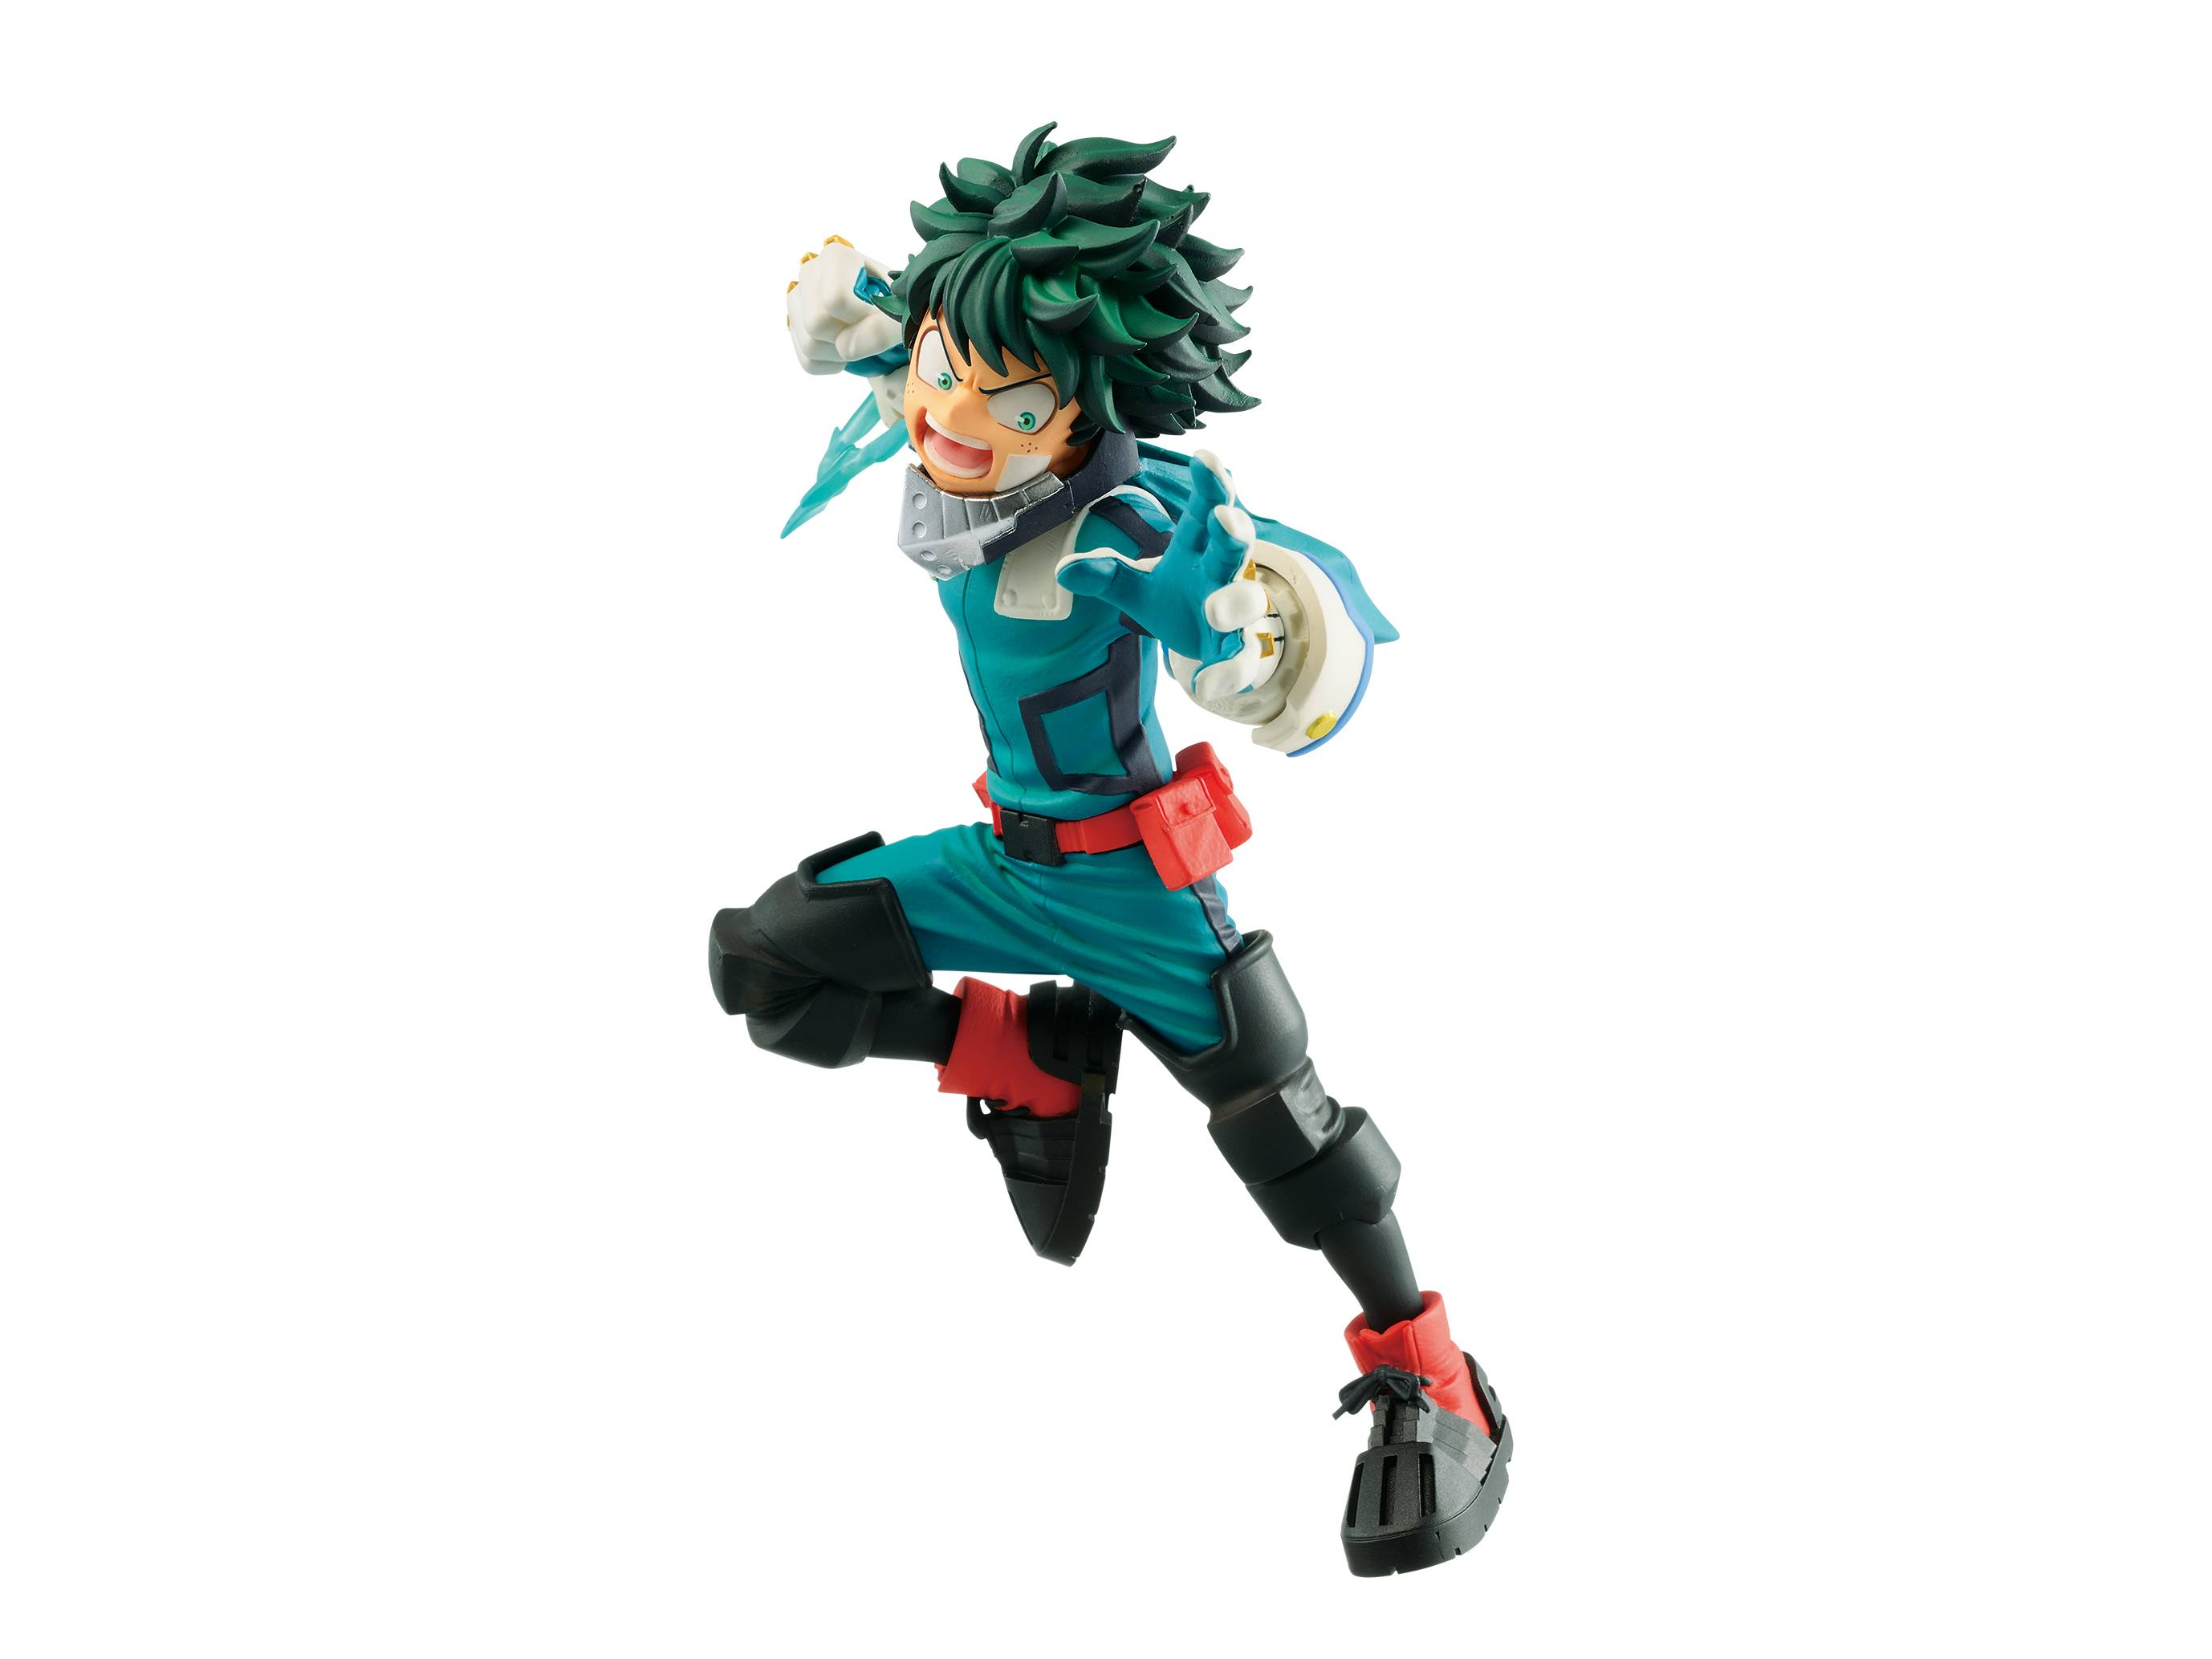 MY HERO ACADEMIA MOVIE HEROES RISING VS VILLAIN DEKU FIGURE